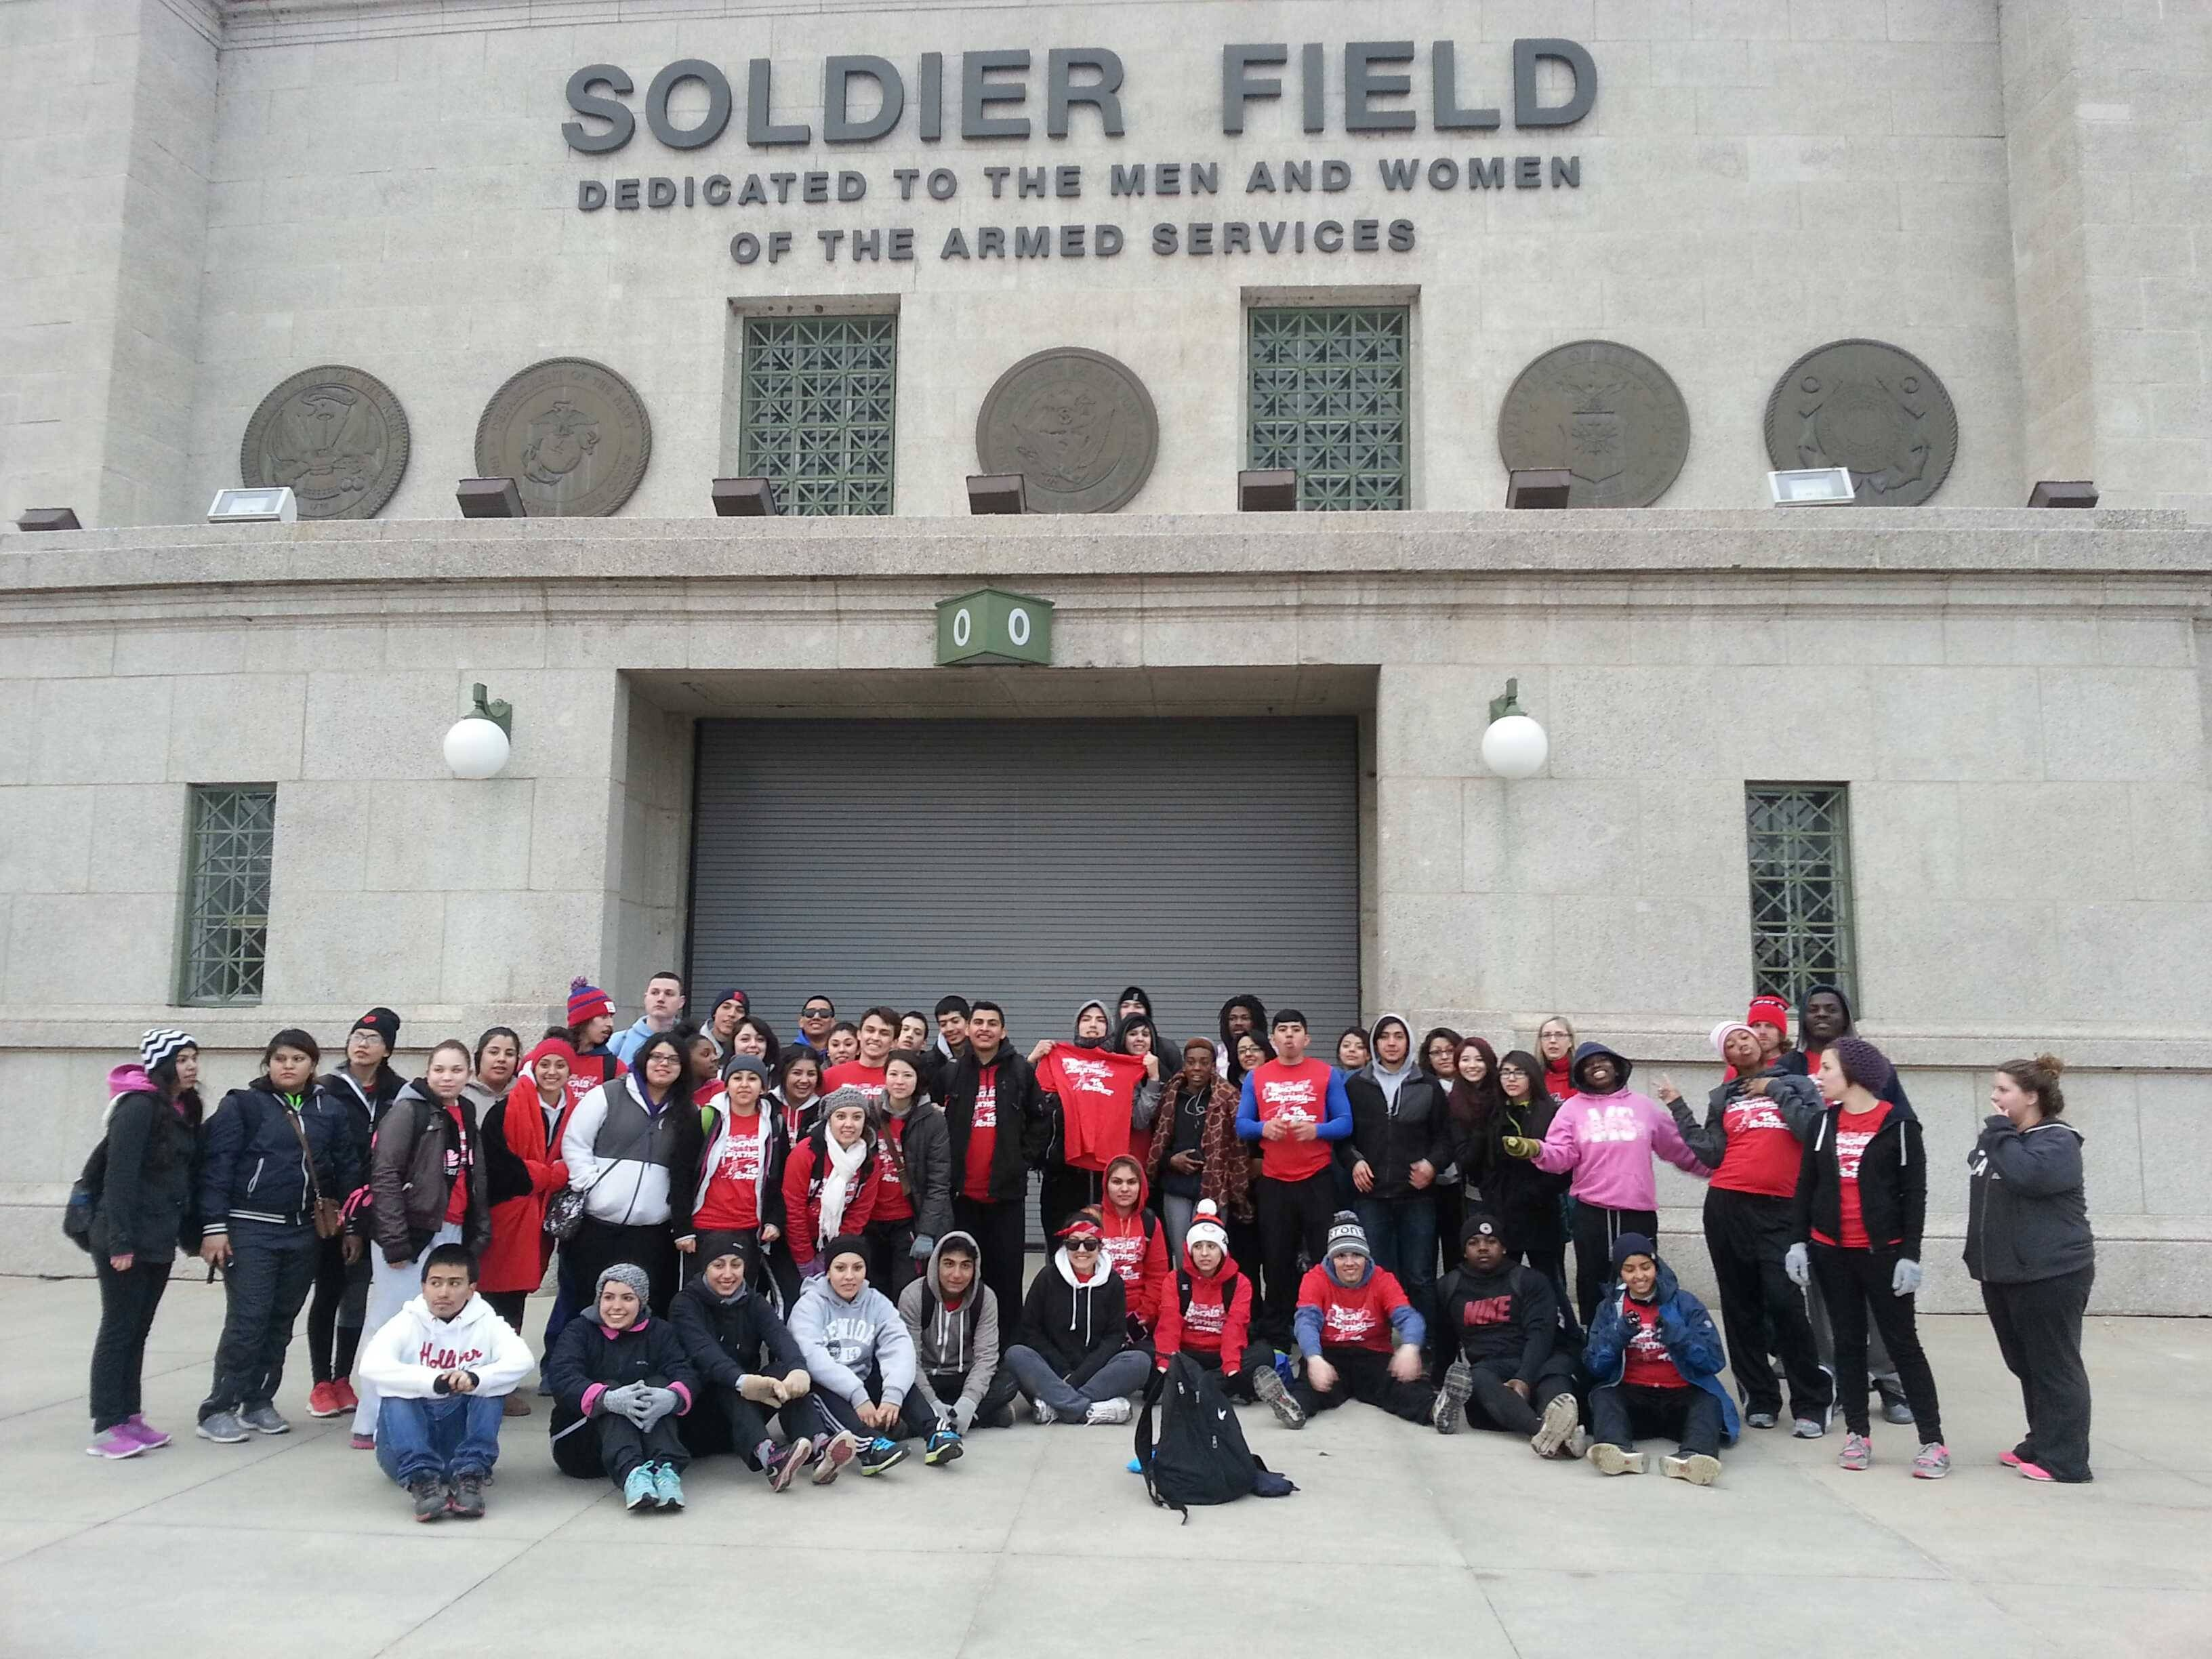 About 60 students, most of whom are in an East Aurora High School class called Survivor Literature, spent 14 hours Wednesday walking from their school to Soldier Field in Chicago to raise money to bring a former child soldier, whose book they have read, to the school to speak next month.